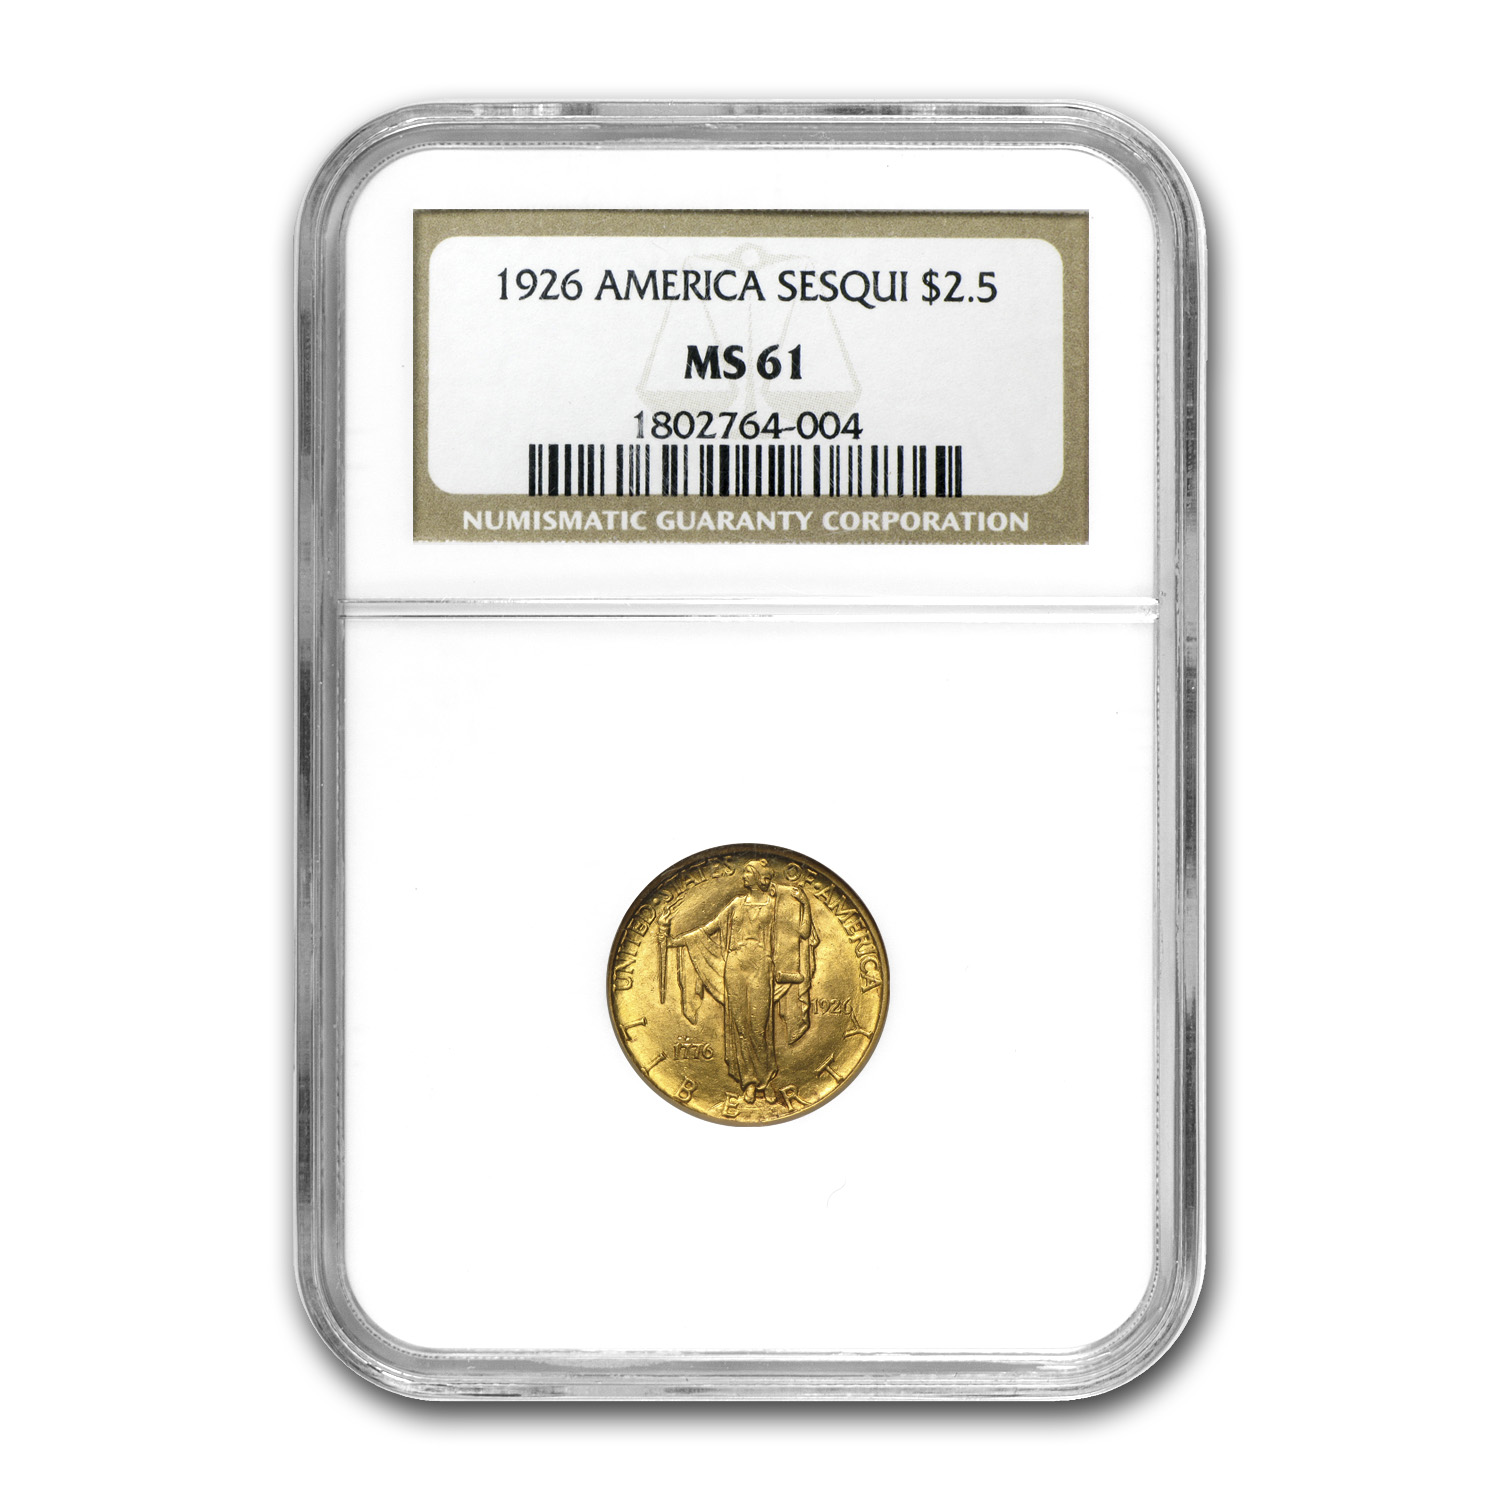 1926 Gold $2.50 America Sesquicentennial MS-61 NGC